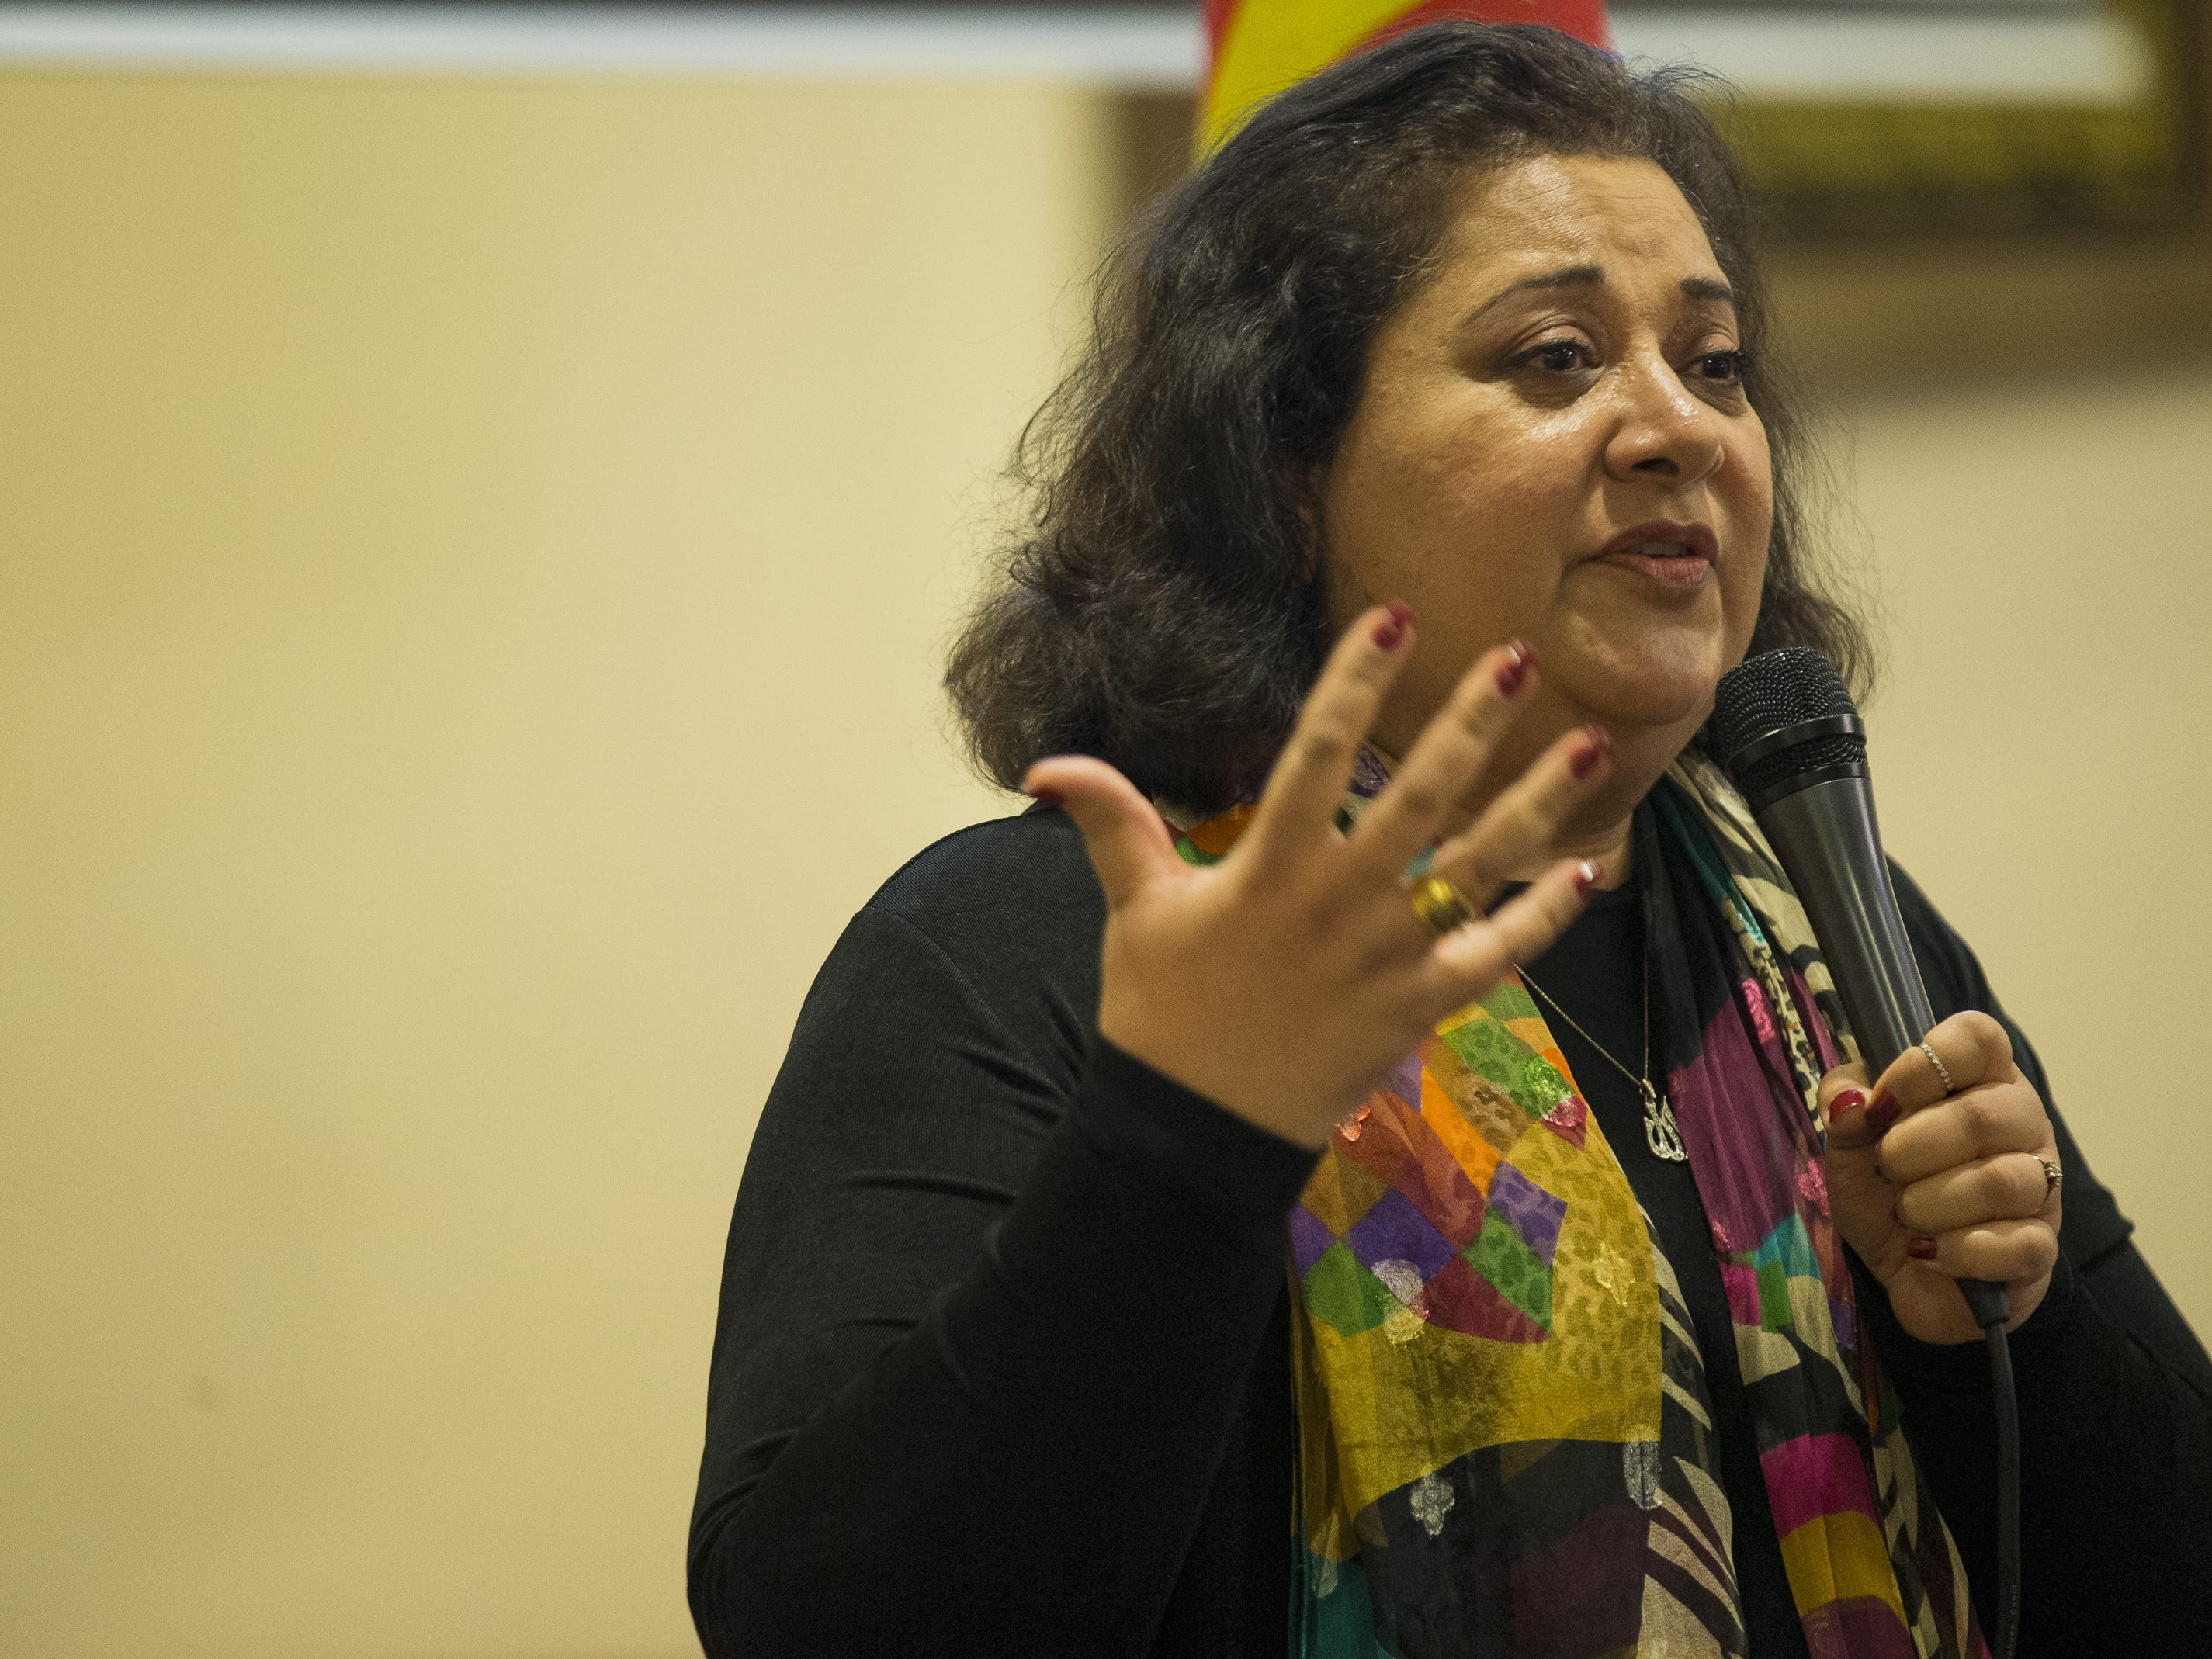 Azra Hussain, the president and co-founder of the Islamic Speakers Bureau of Arizona, speaks at a vigil held at the Islamic Center of Northeast Valley in Scottsdale, Ariz., on Sunday, March 17, 2019, in memory of the Christchurch New Zealand shooting victims.